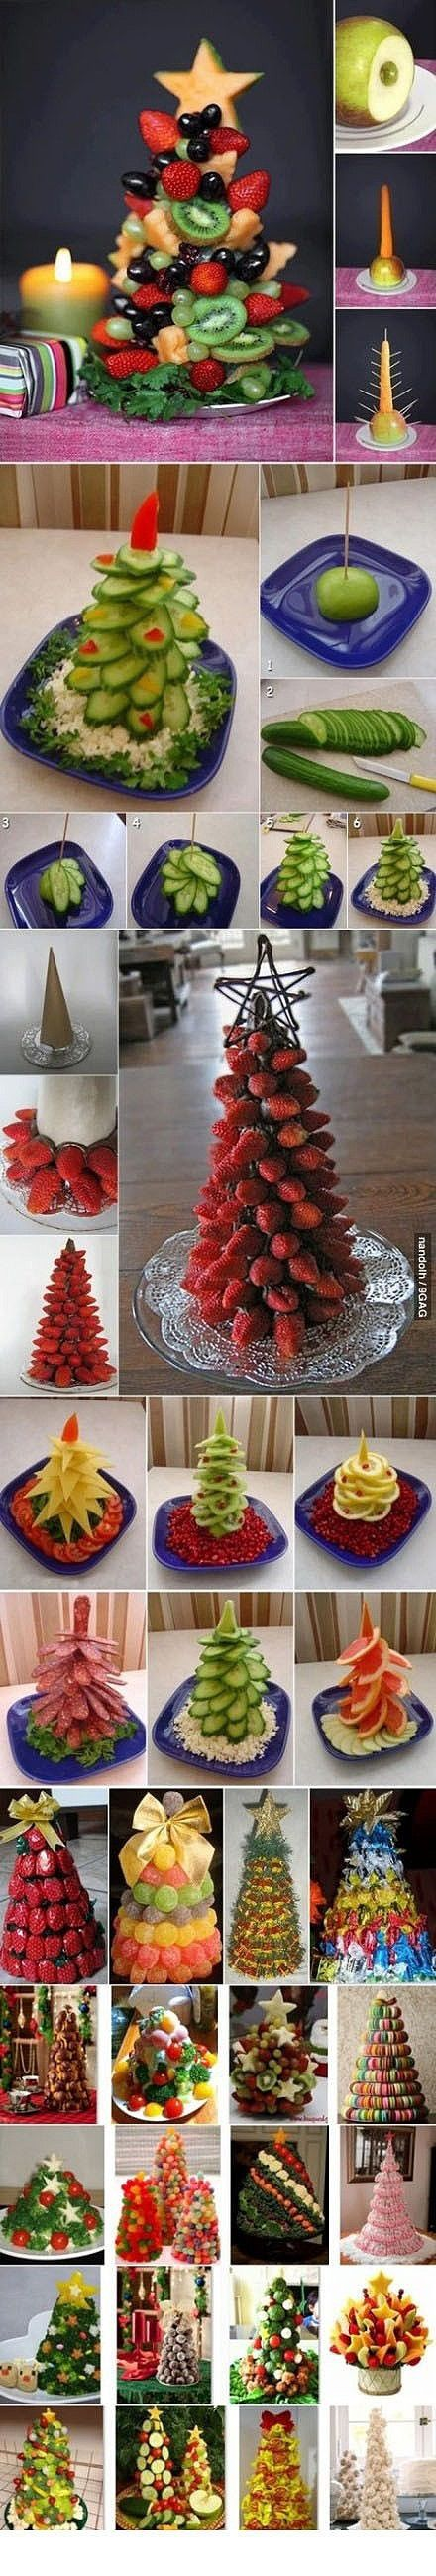 30 ways to make fruit Christmas trees ~~ How to, how to do, diy instructions, crafts, do it yourself, diy website, art project ideas by Mary ...